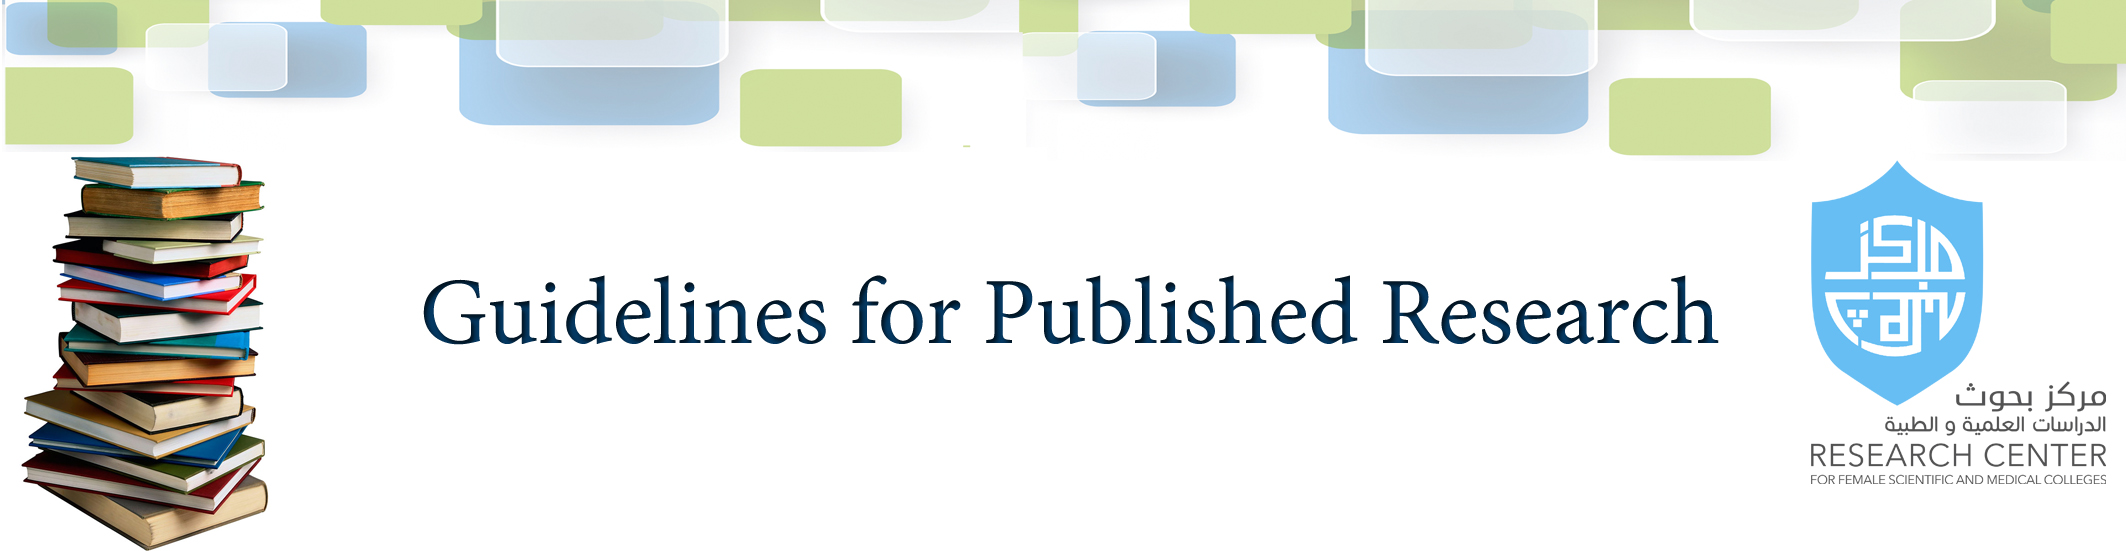 Guidelines for Published Research -  